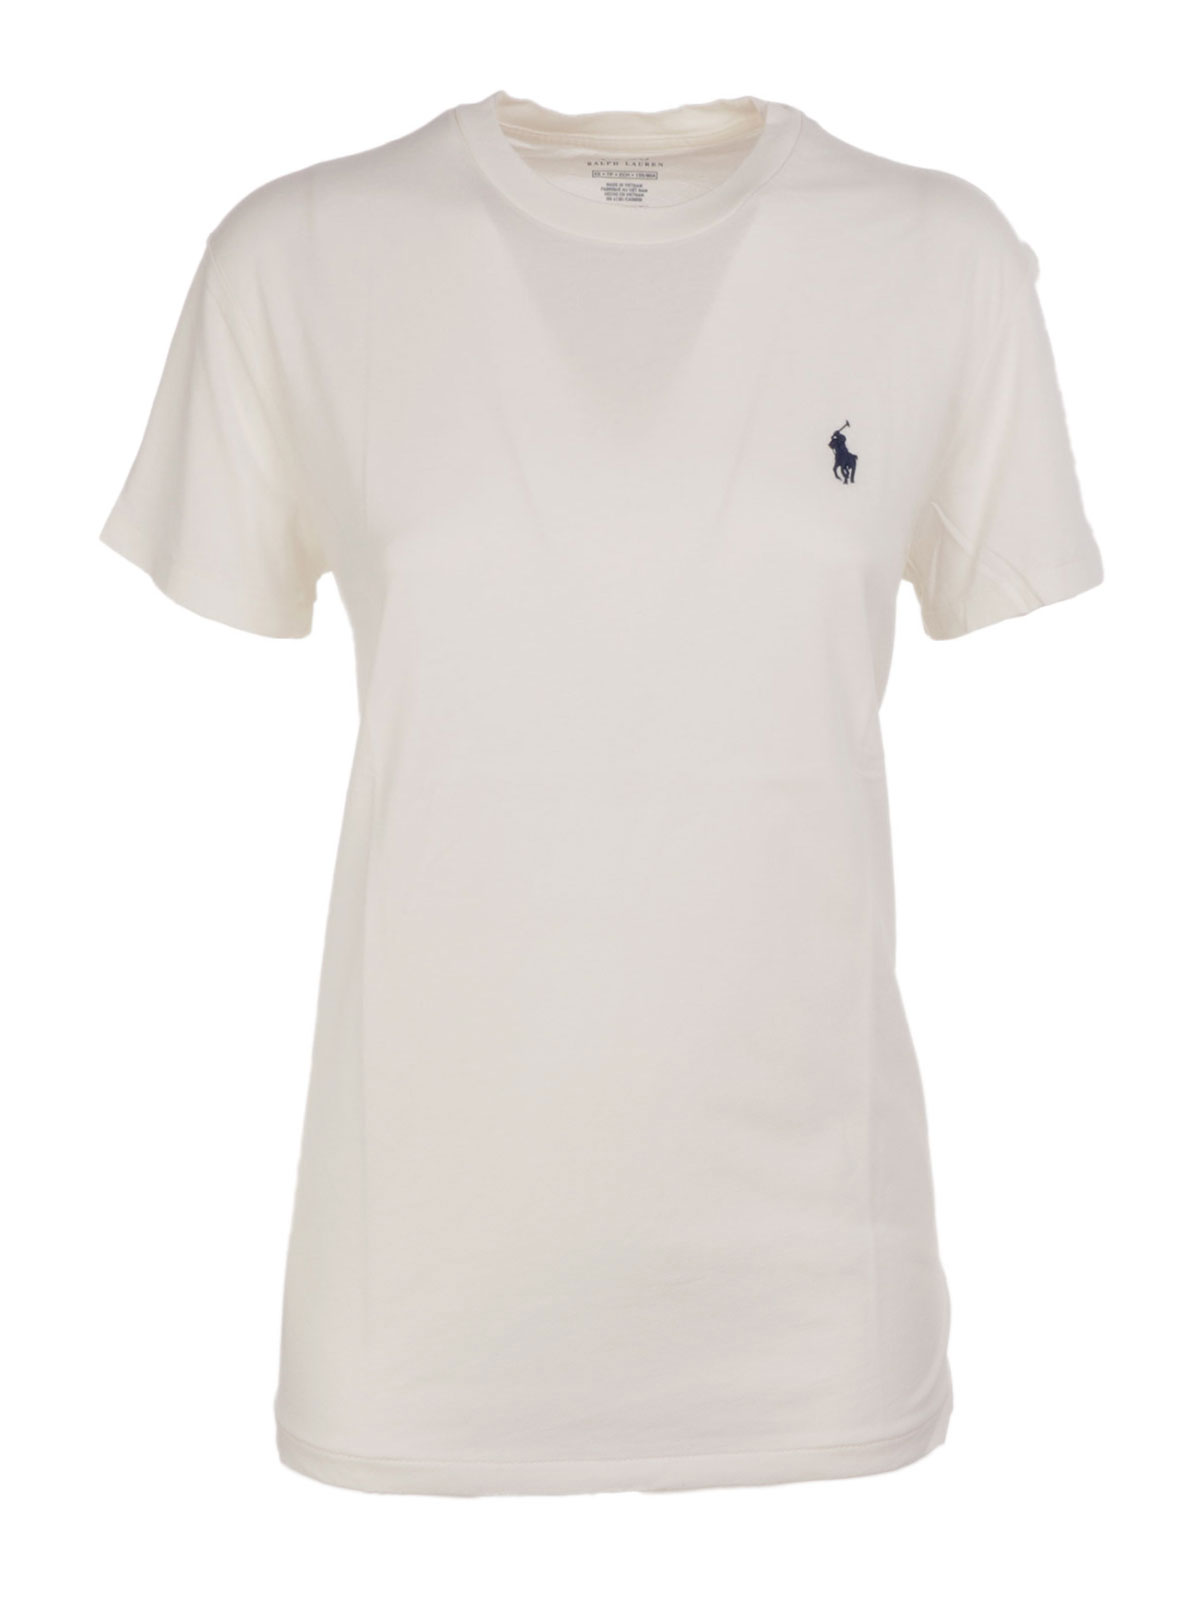 best service 86bfc 3521b POLO RALPH LAUREN Women's Solid T-Shirt